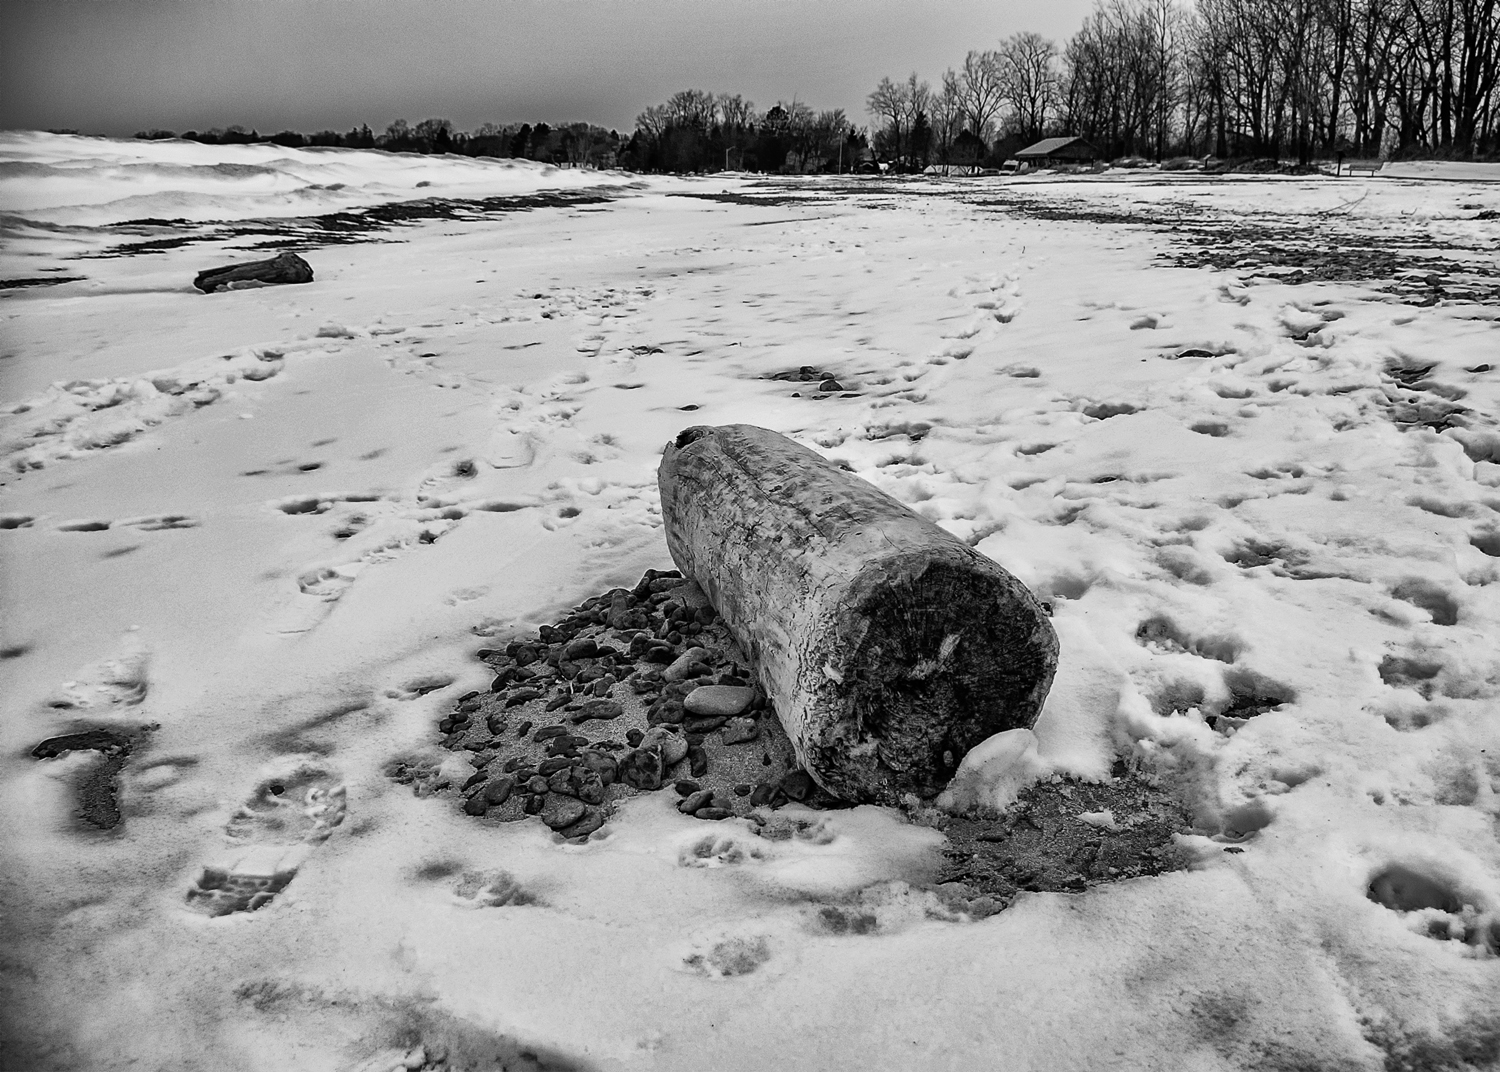 Wellington Beach in winter - covered by snow, ice mounds on the left, a forlorn looking log in the front.